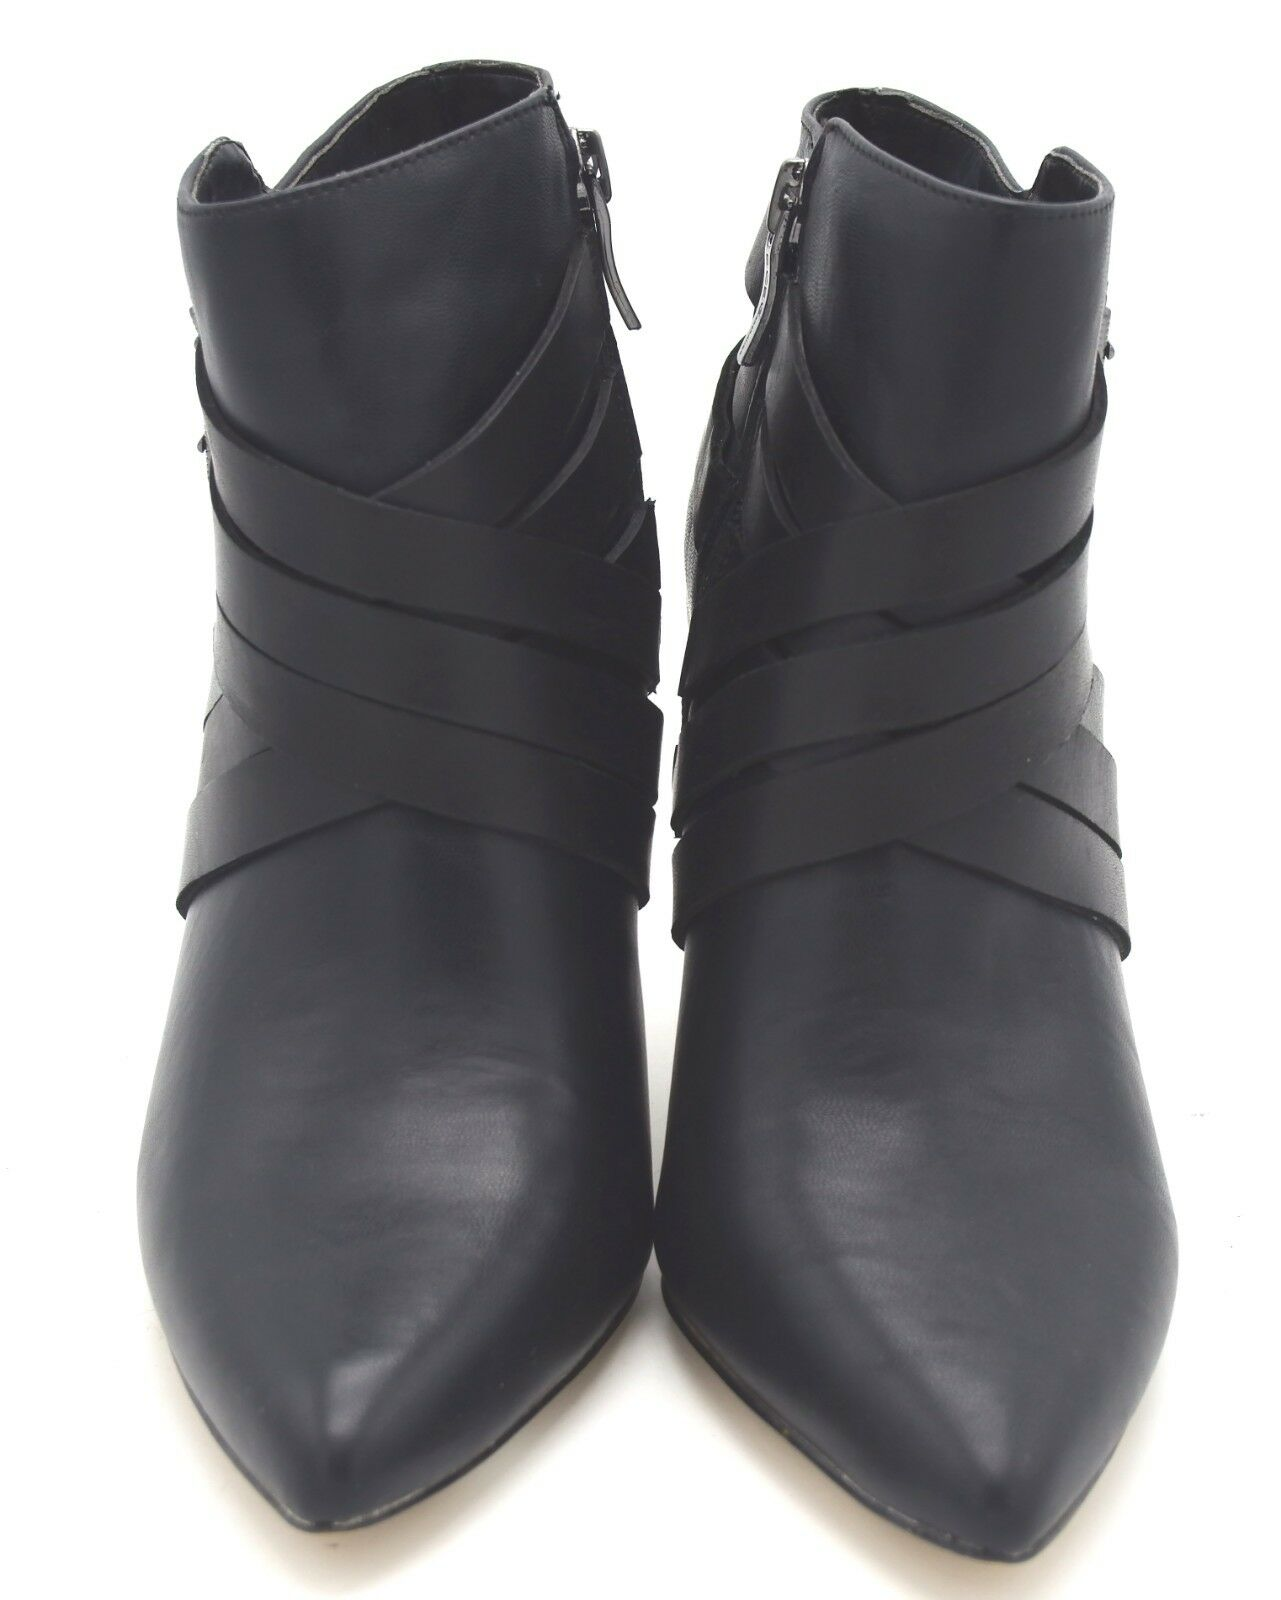 J6900 New Womens BCBGeneration Zing Black Leather Buckle Bootie 6 6 6 M 48e6c5